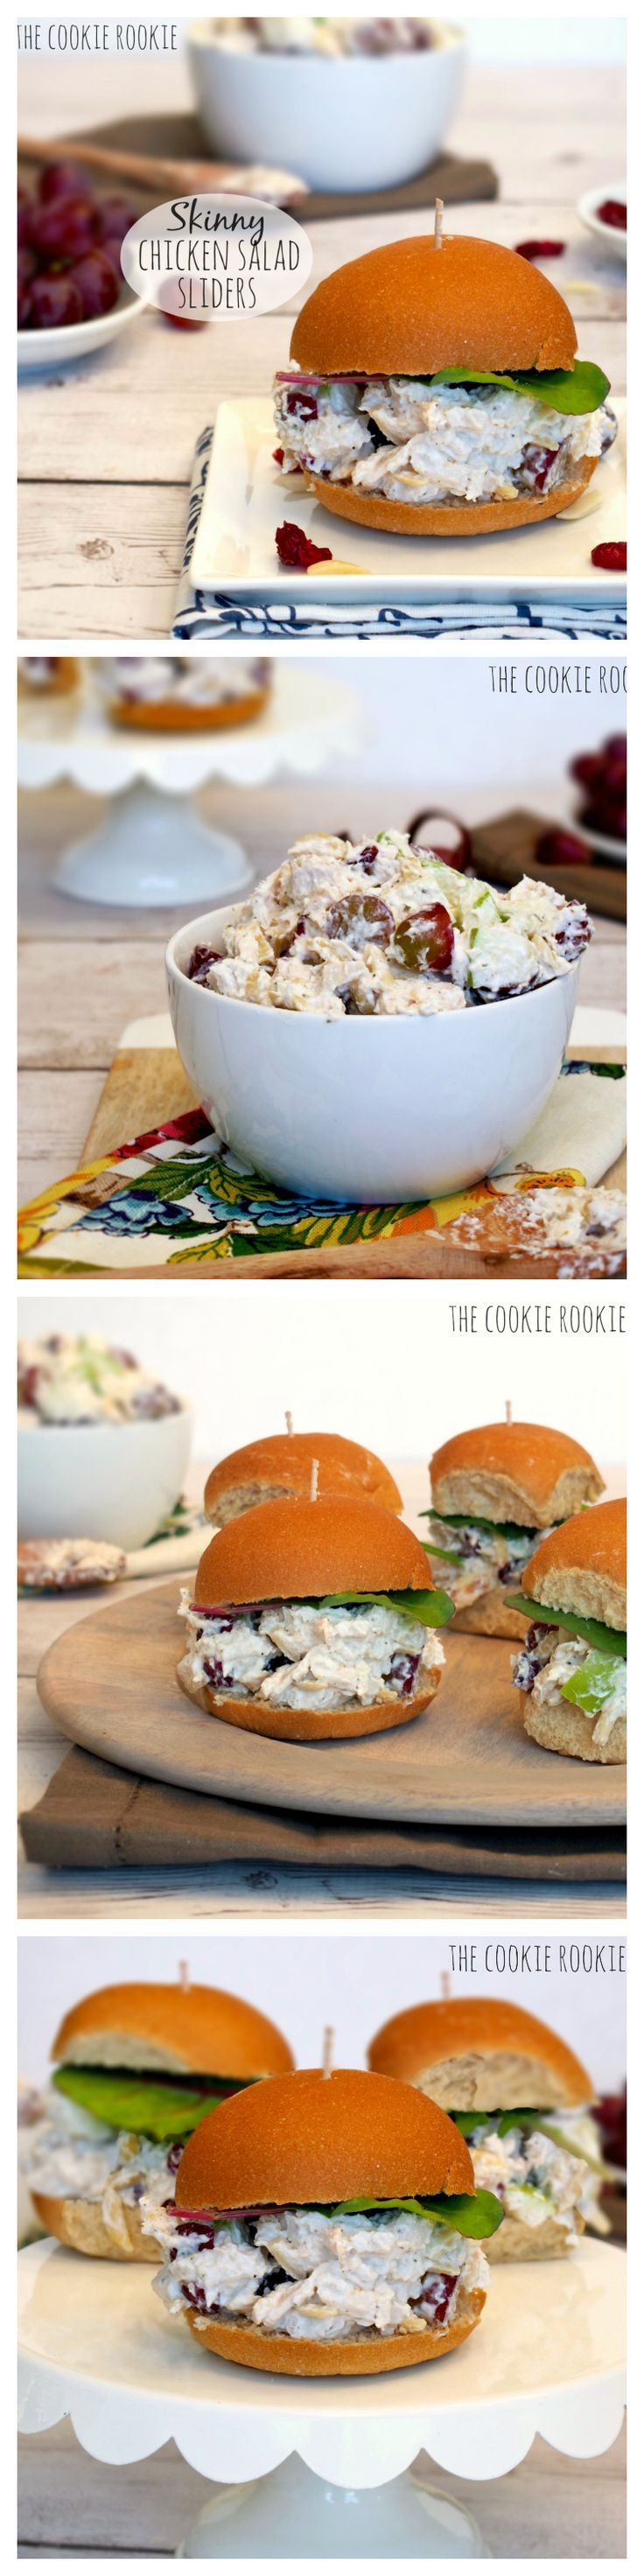 Skinny Chicken Salad Sliders | This would be a good addition on your Memorial Day party menu. #youresopretty